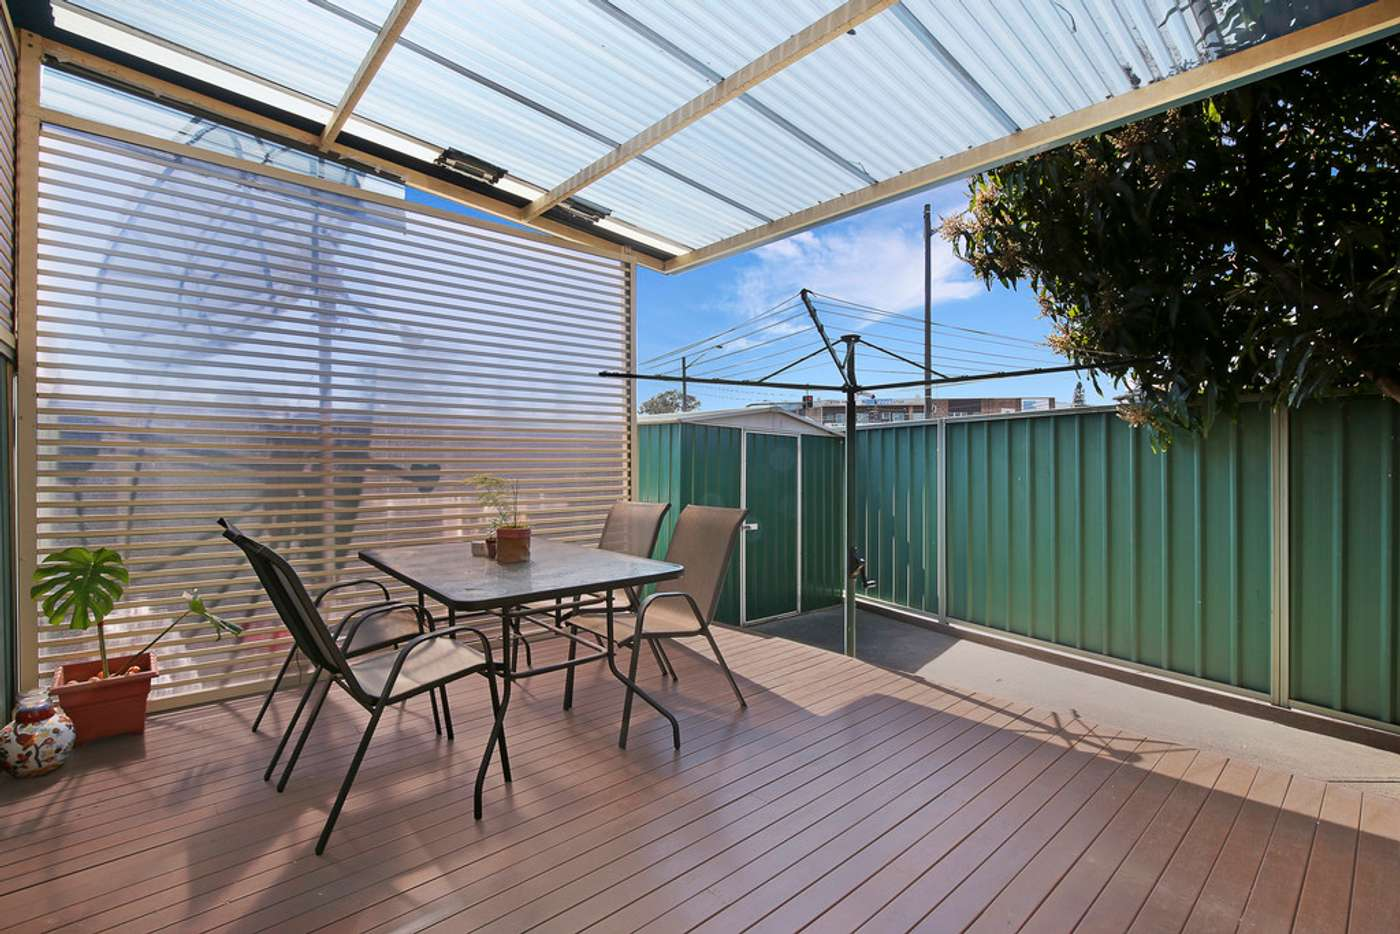 Sixth view of Homely townhouse listing, 4/2 Wilbur Street, Greenacre NSW 2190